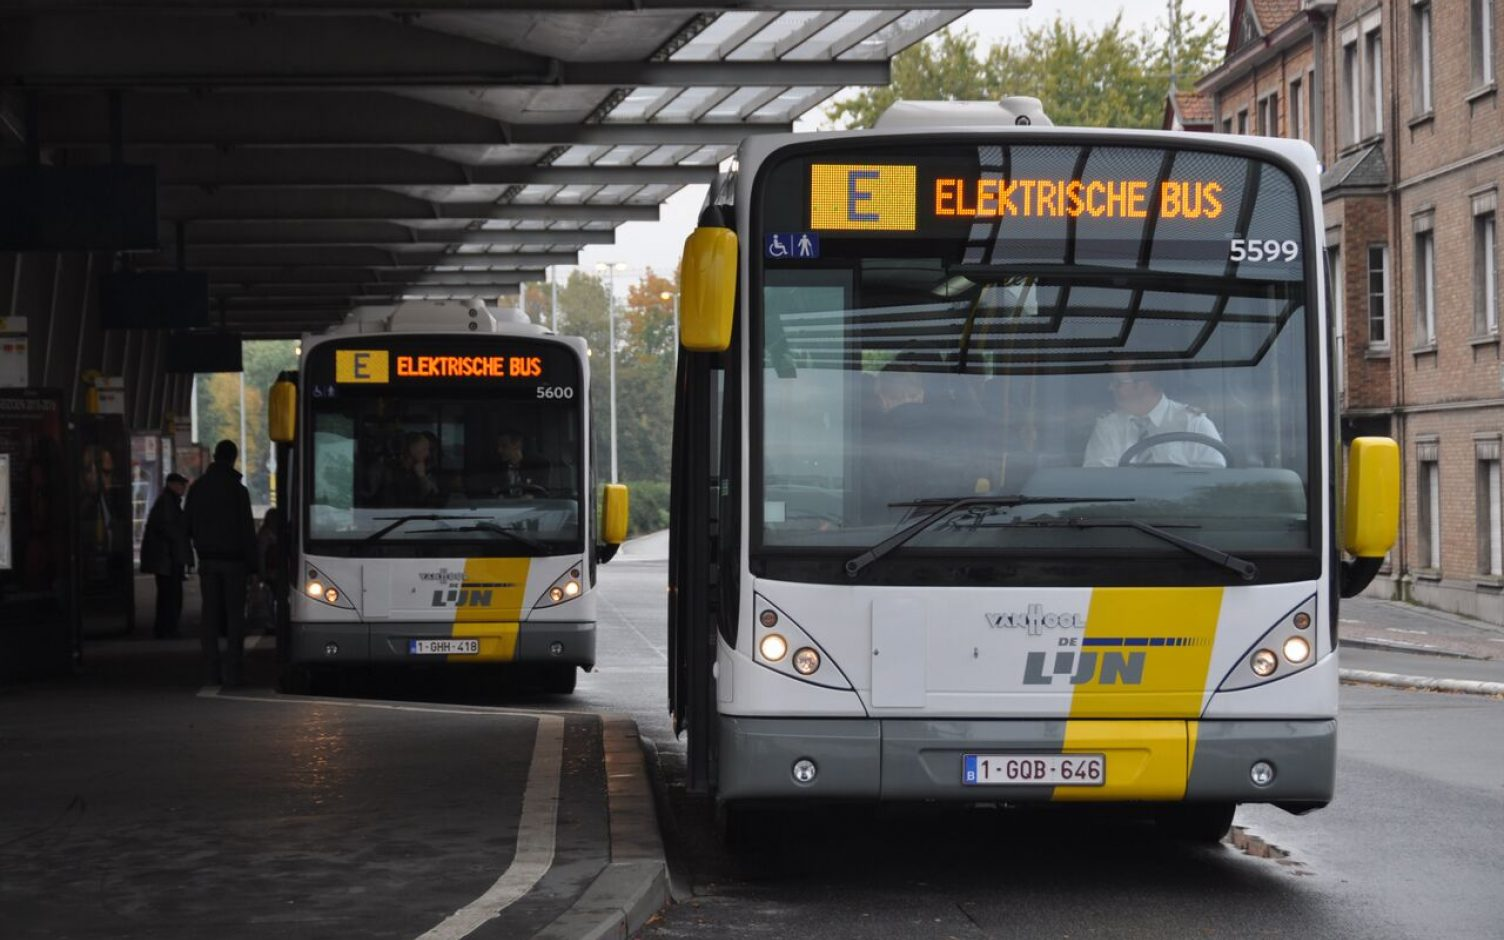 Europe's electric bus market in transformational growth mode